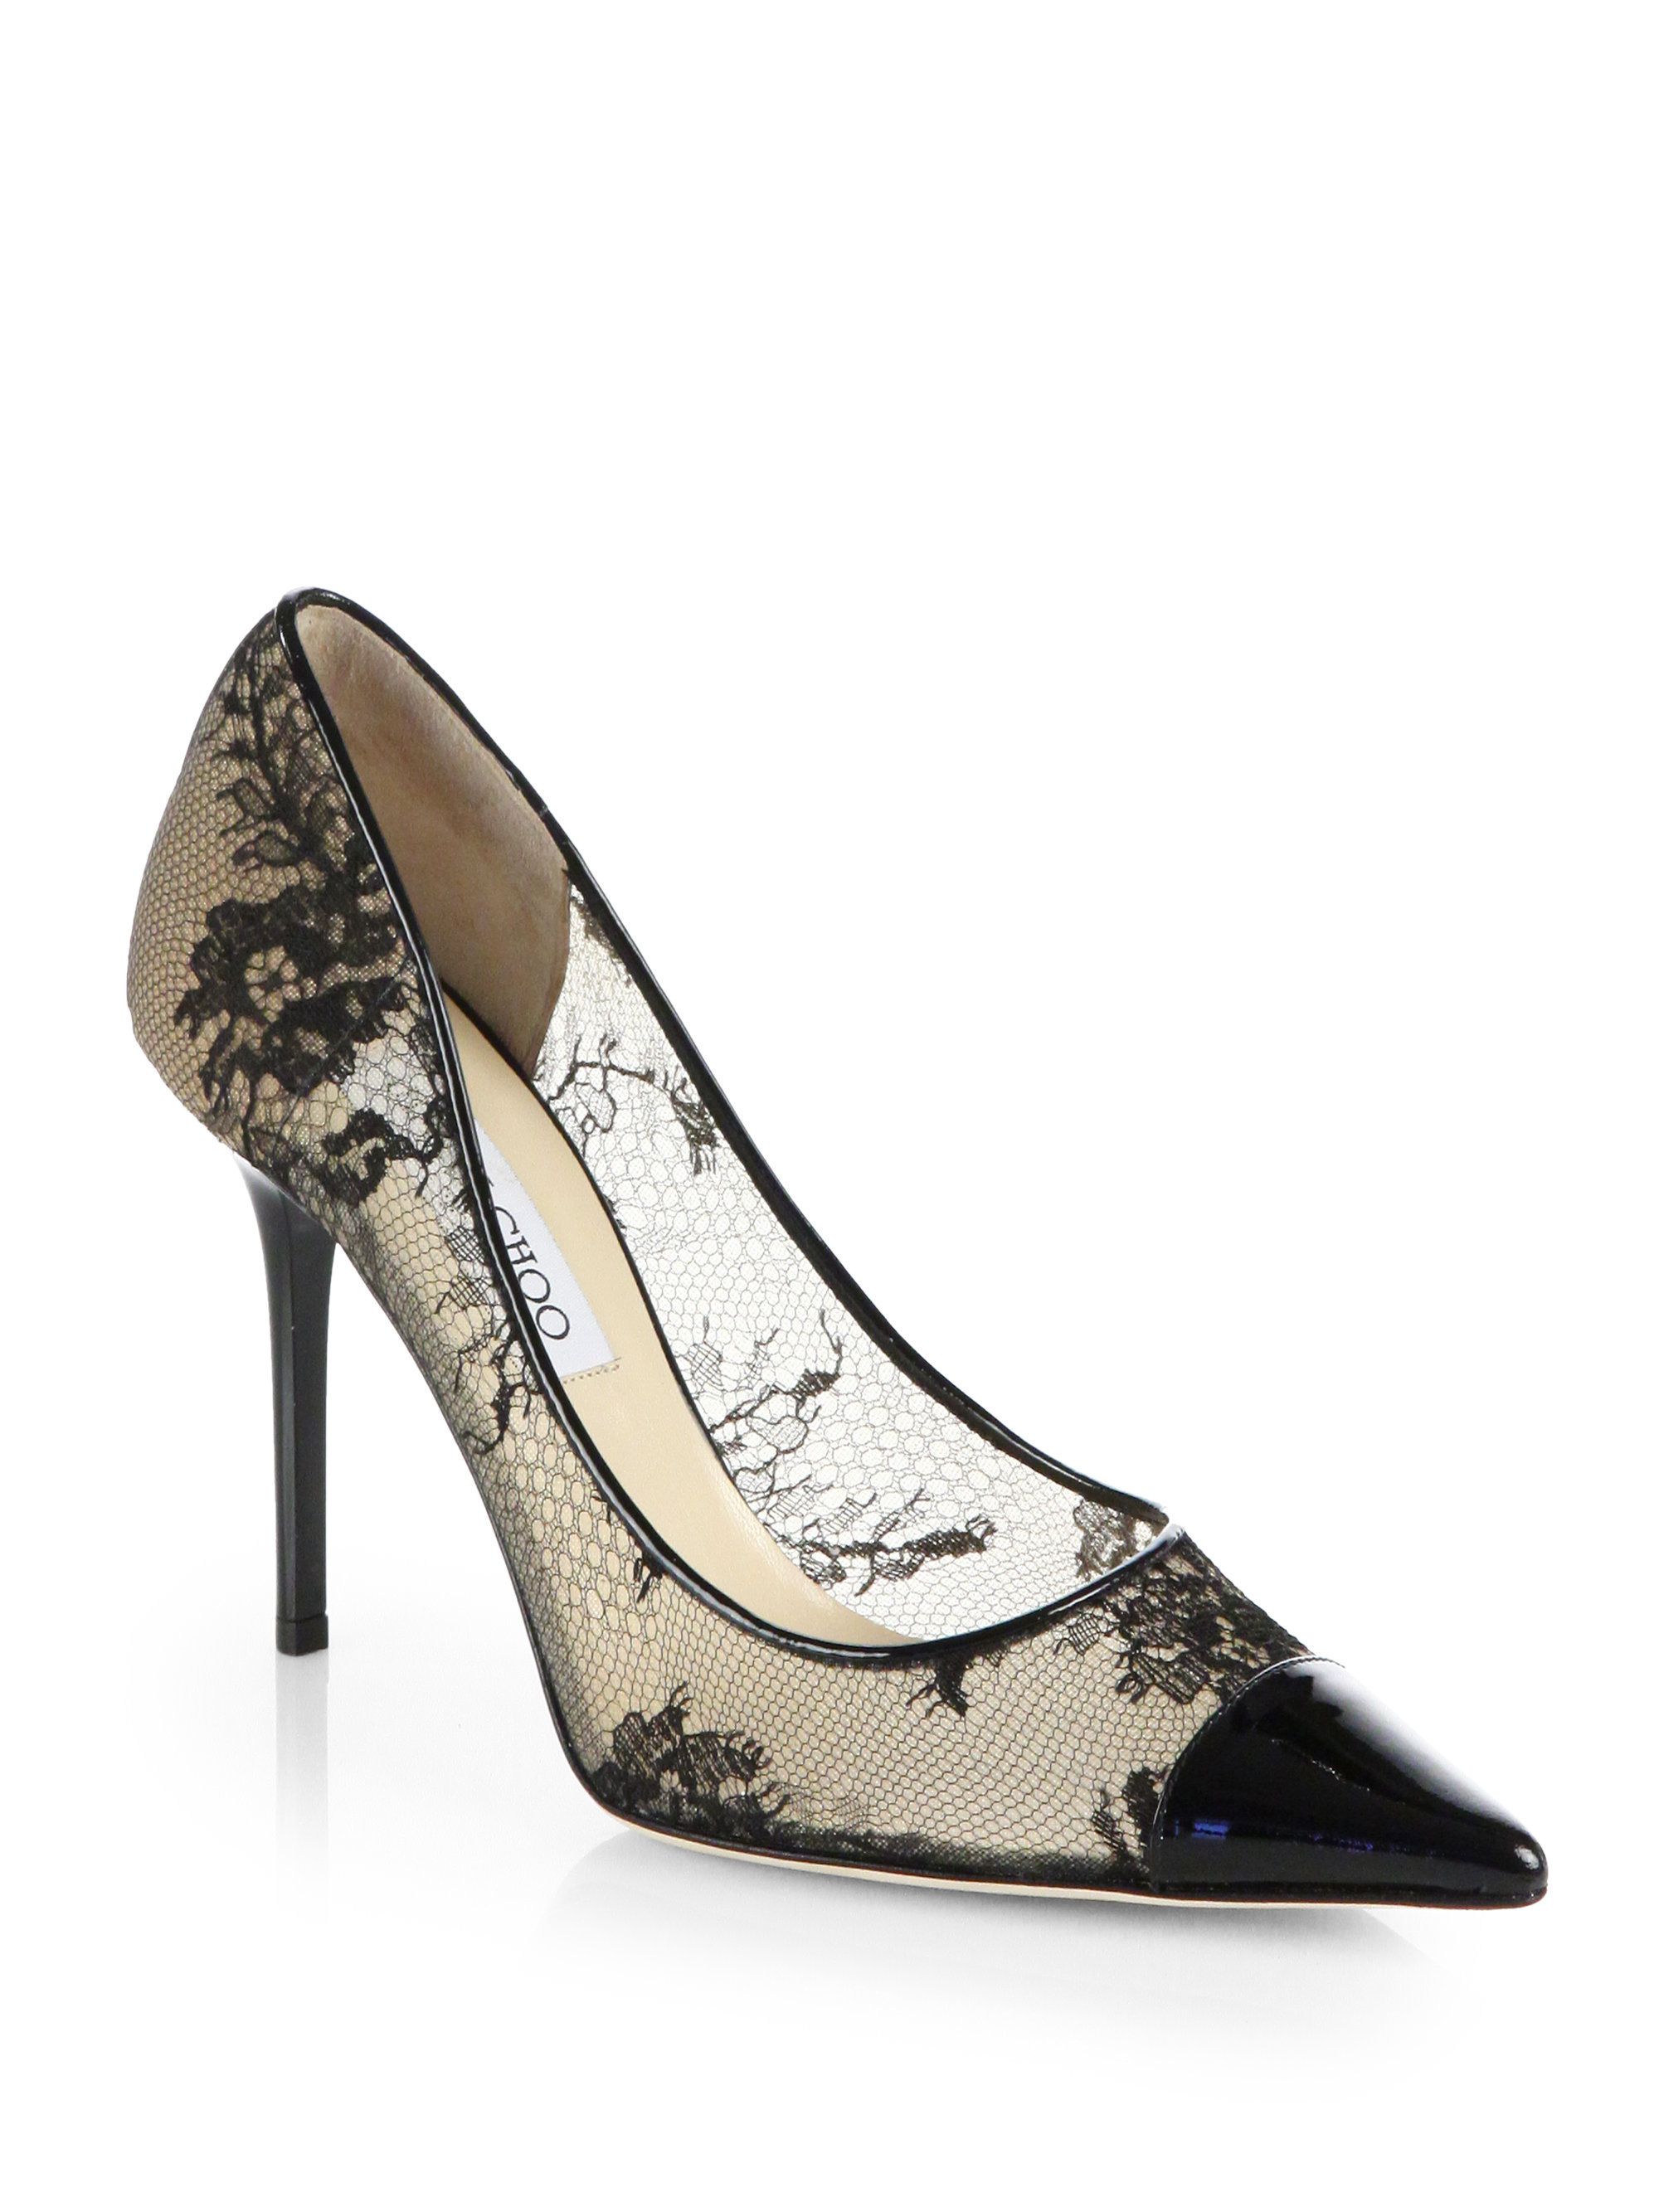 pay with paypal Jimmy Choo Patent Leather-Trimmed Lace Pumps wholesale online 0w8j3n